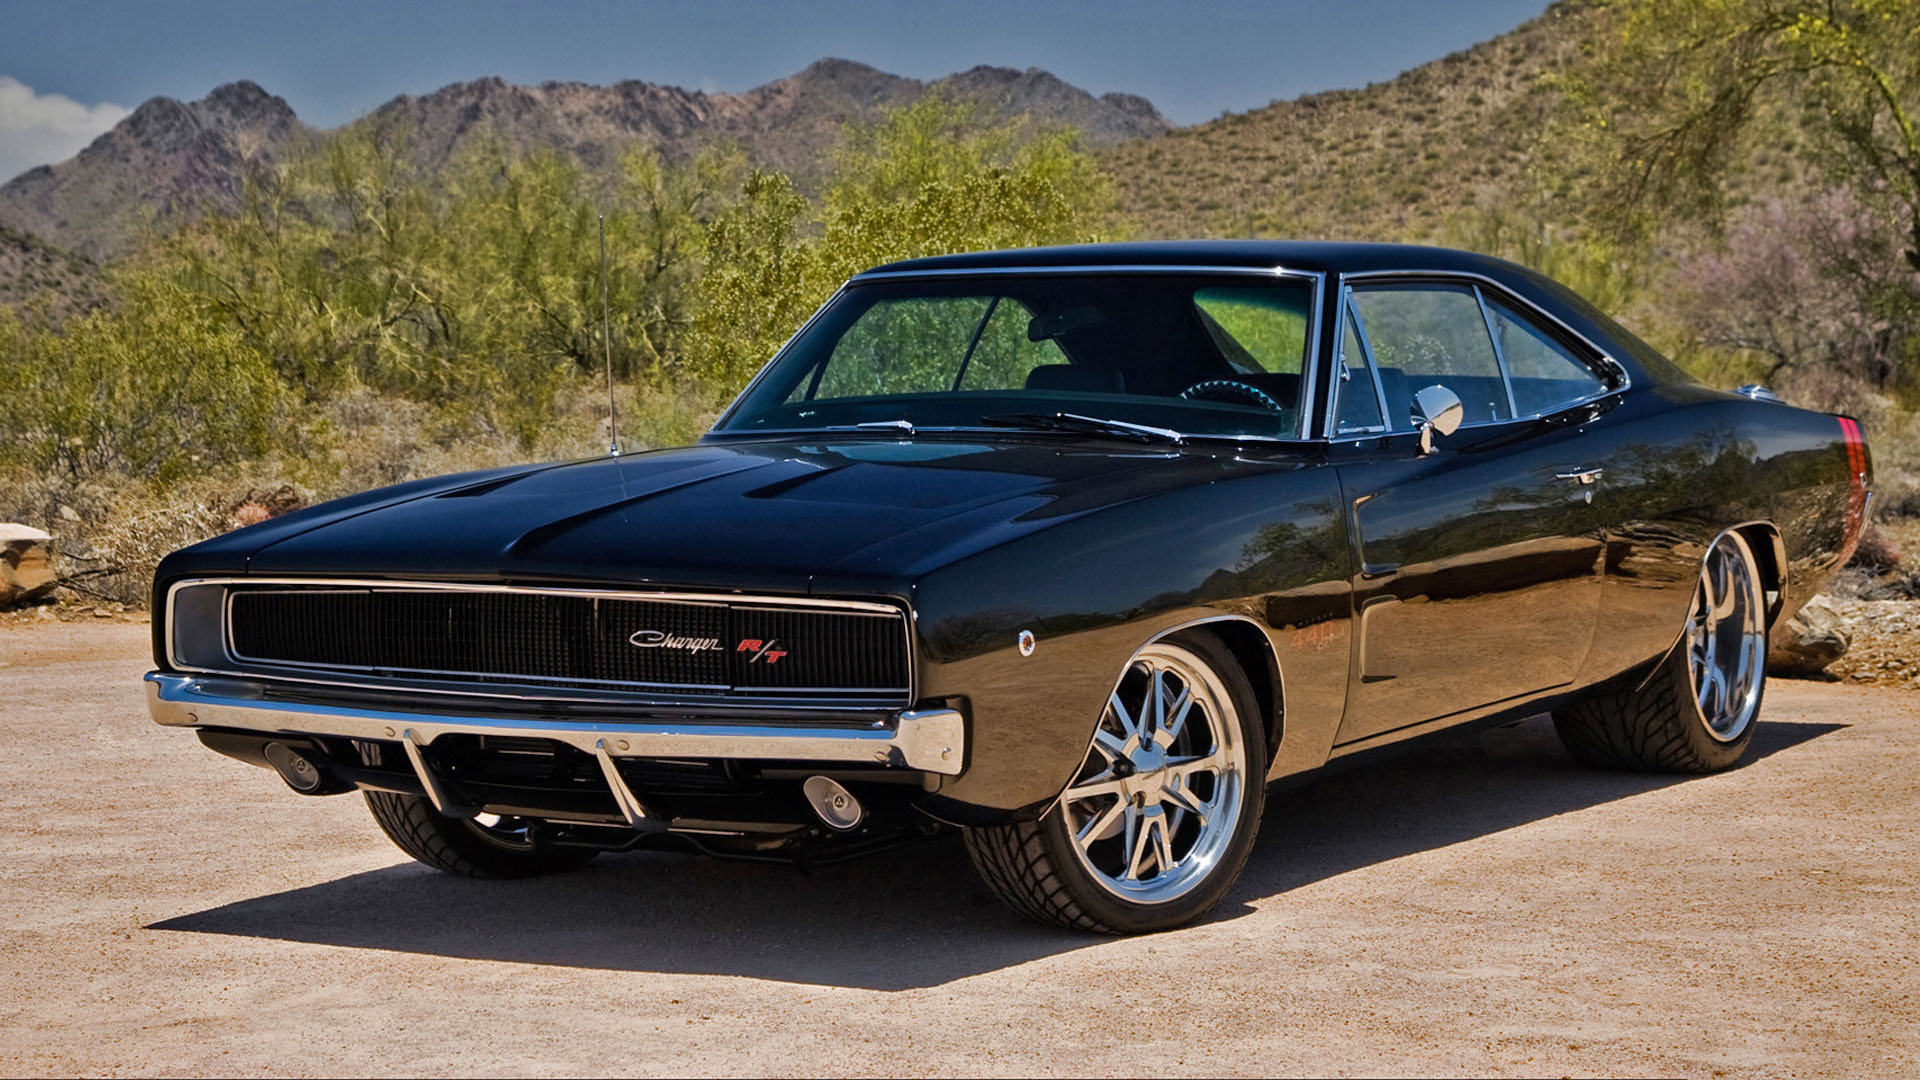 charger-wallhud-com-»-Dodge-Charger-HD-wallhud-wallpaper-wpc5803362